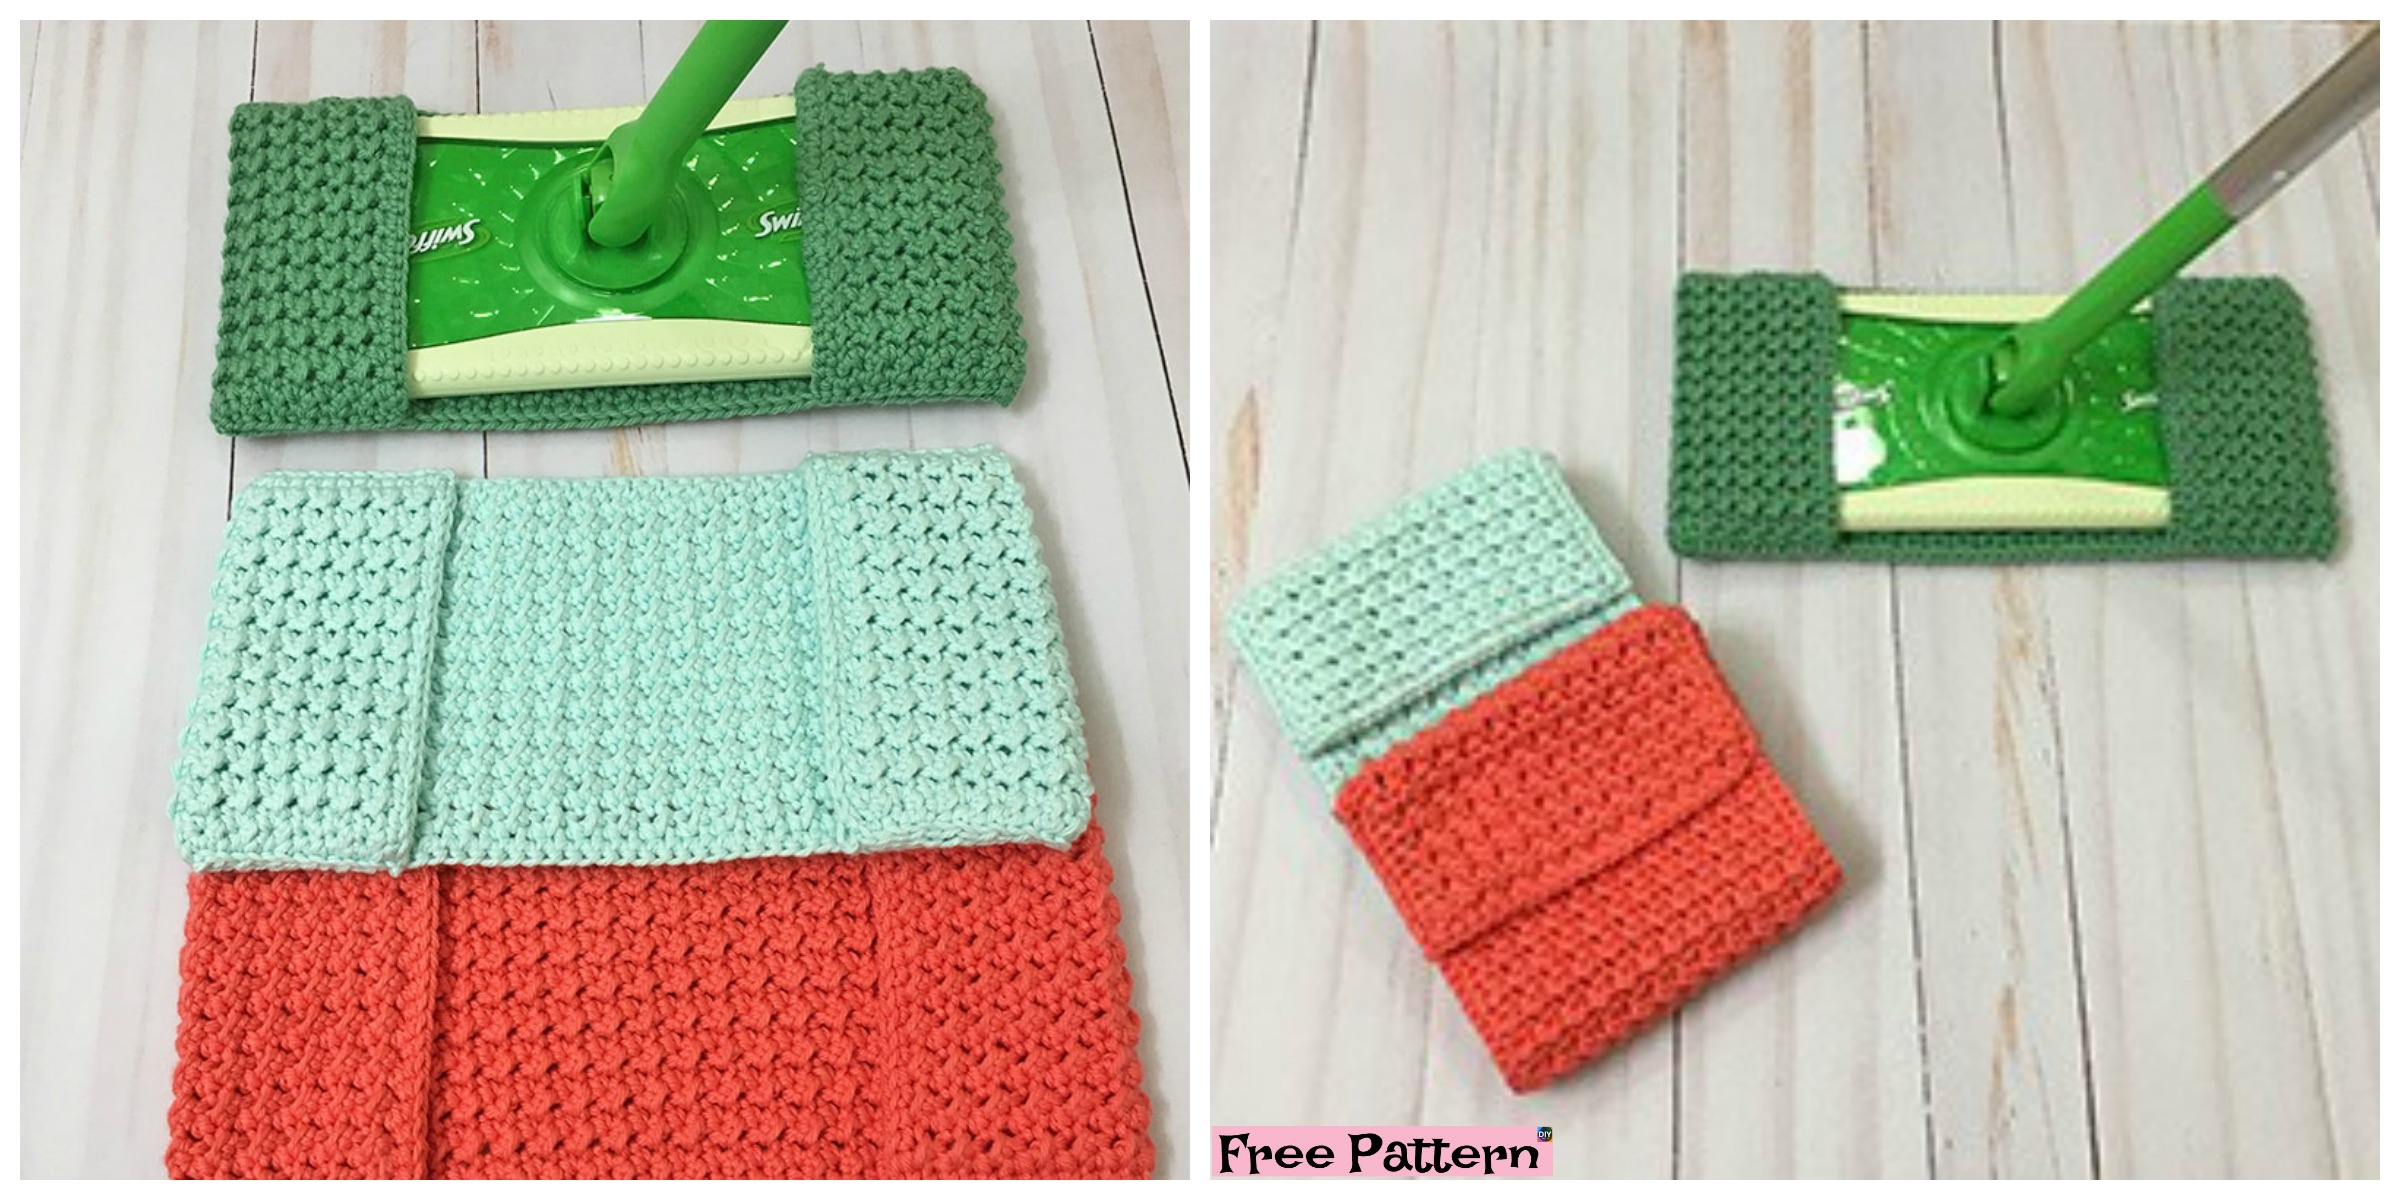 Easy Crochet Mop Cover – Free Pattern